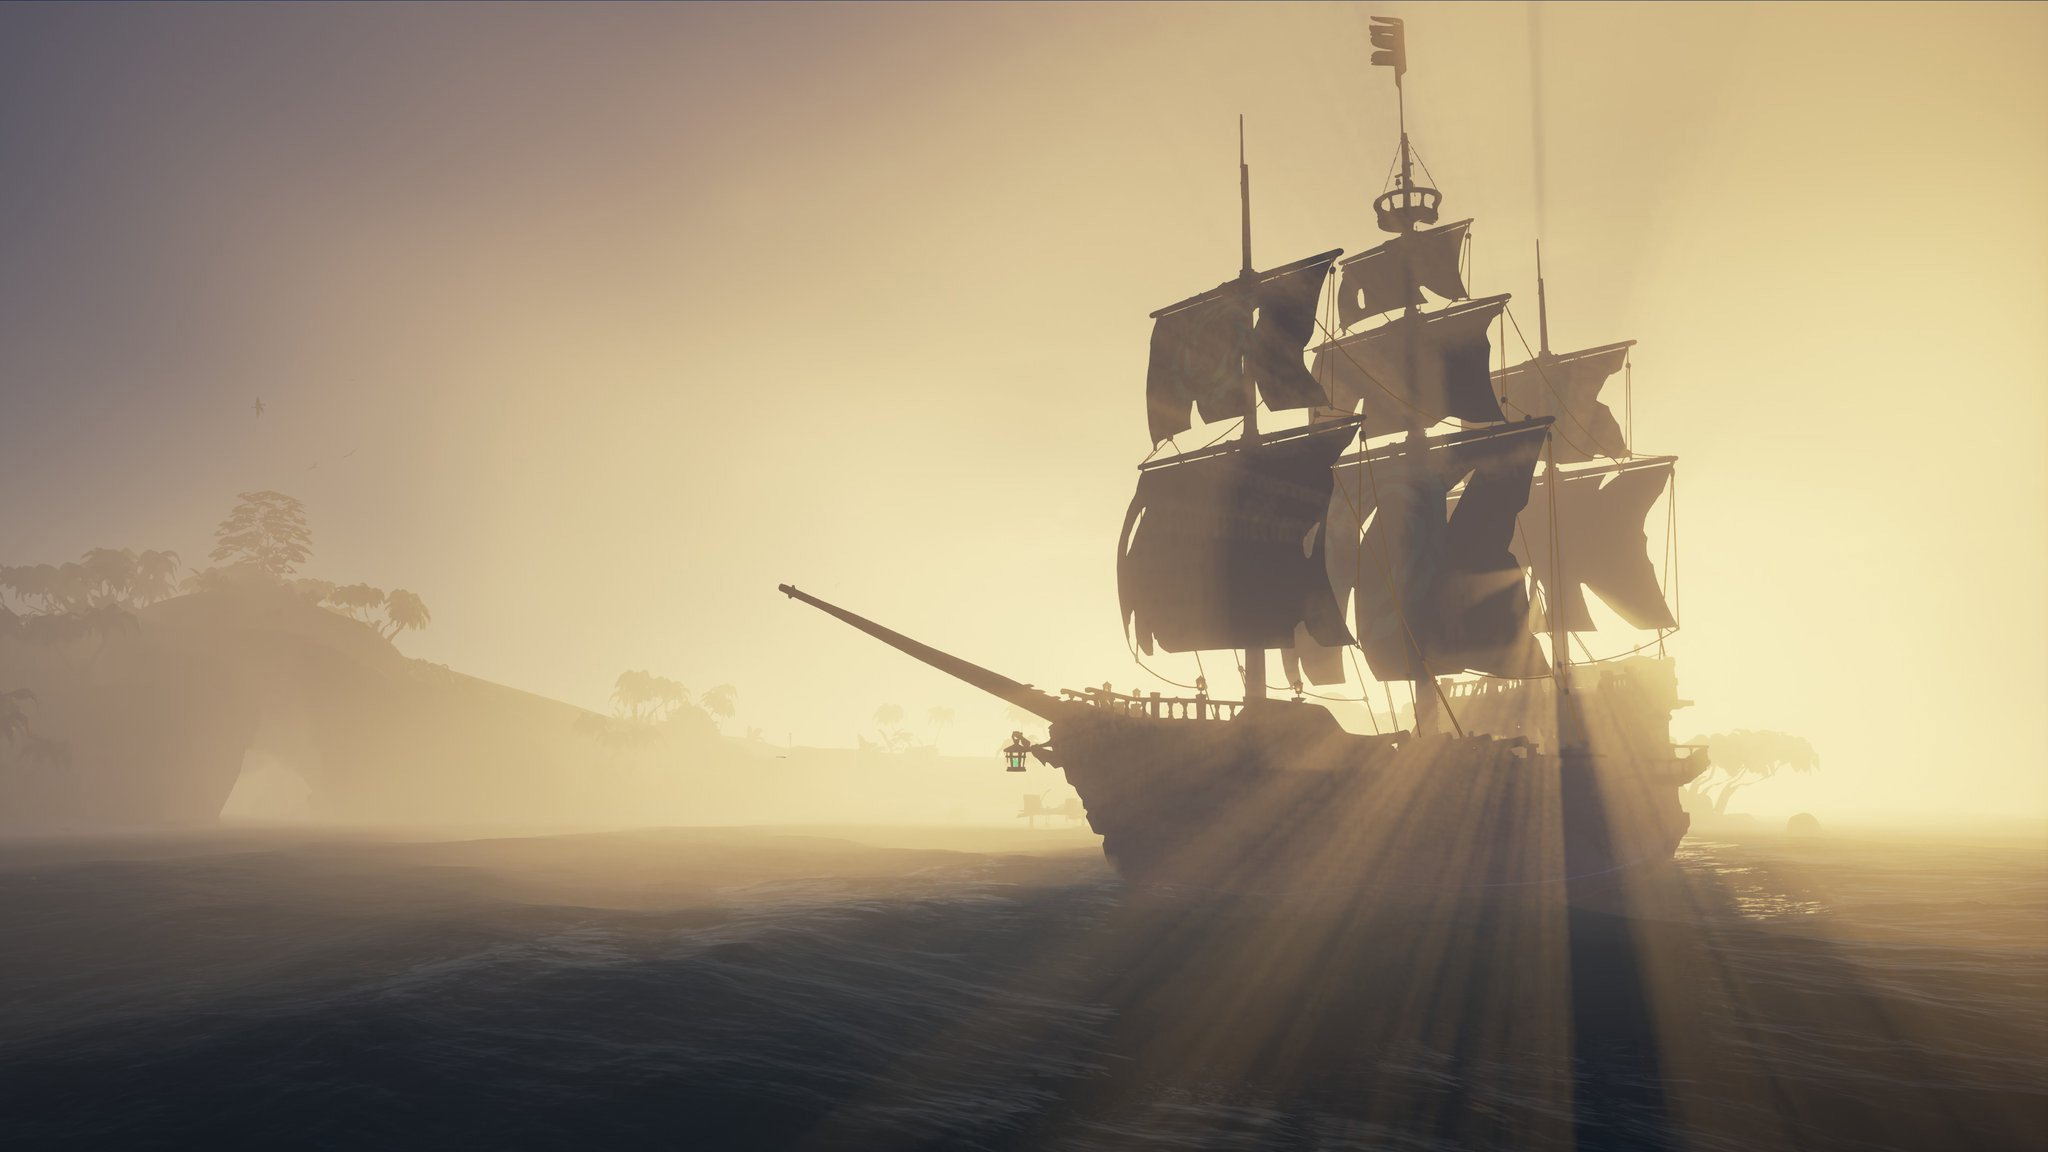 Sea of Thieves' Shrouded Spoils update focuses on refining core content screenshot